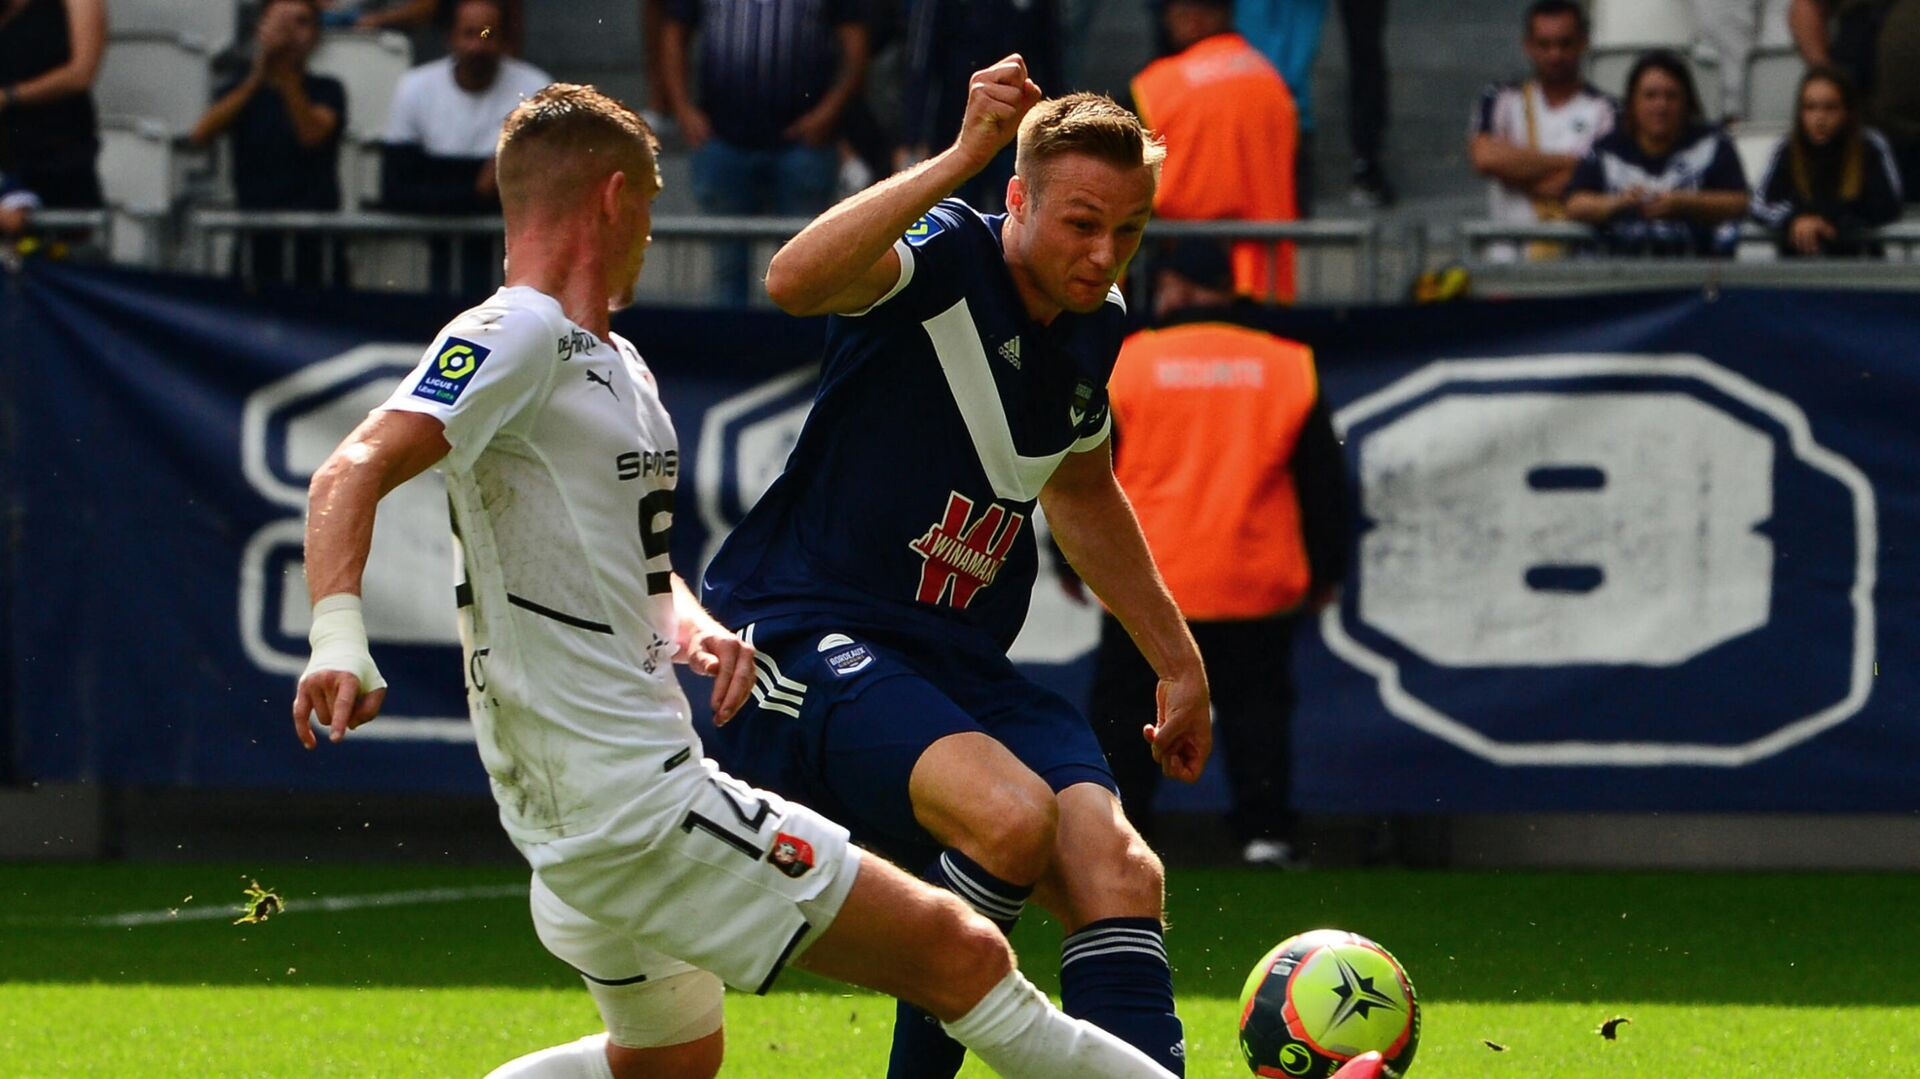 Bordeaux's Norwegian defender Stian Gregersen (R) fights for the ball against Rennes' French midfielder Benjamin Bourigeaud during the French L1 football match between FC Girondins de Bordeaux and Stade Rennais F.C. at The Matmut Atlantique Stadium in Bordeaux, south-western France on September 26, 2021. (Photo by MEHDI FEDOUACH / AFP) - РИА Новости, 1920, 26.09.2021